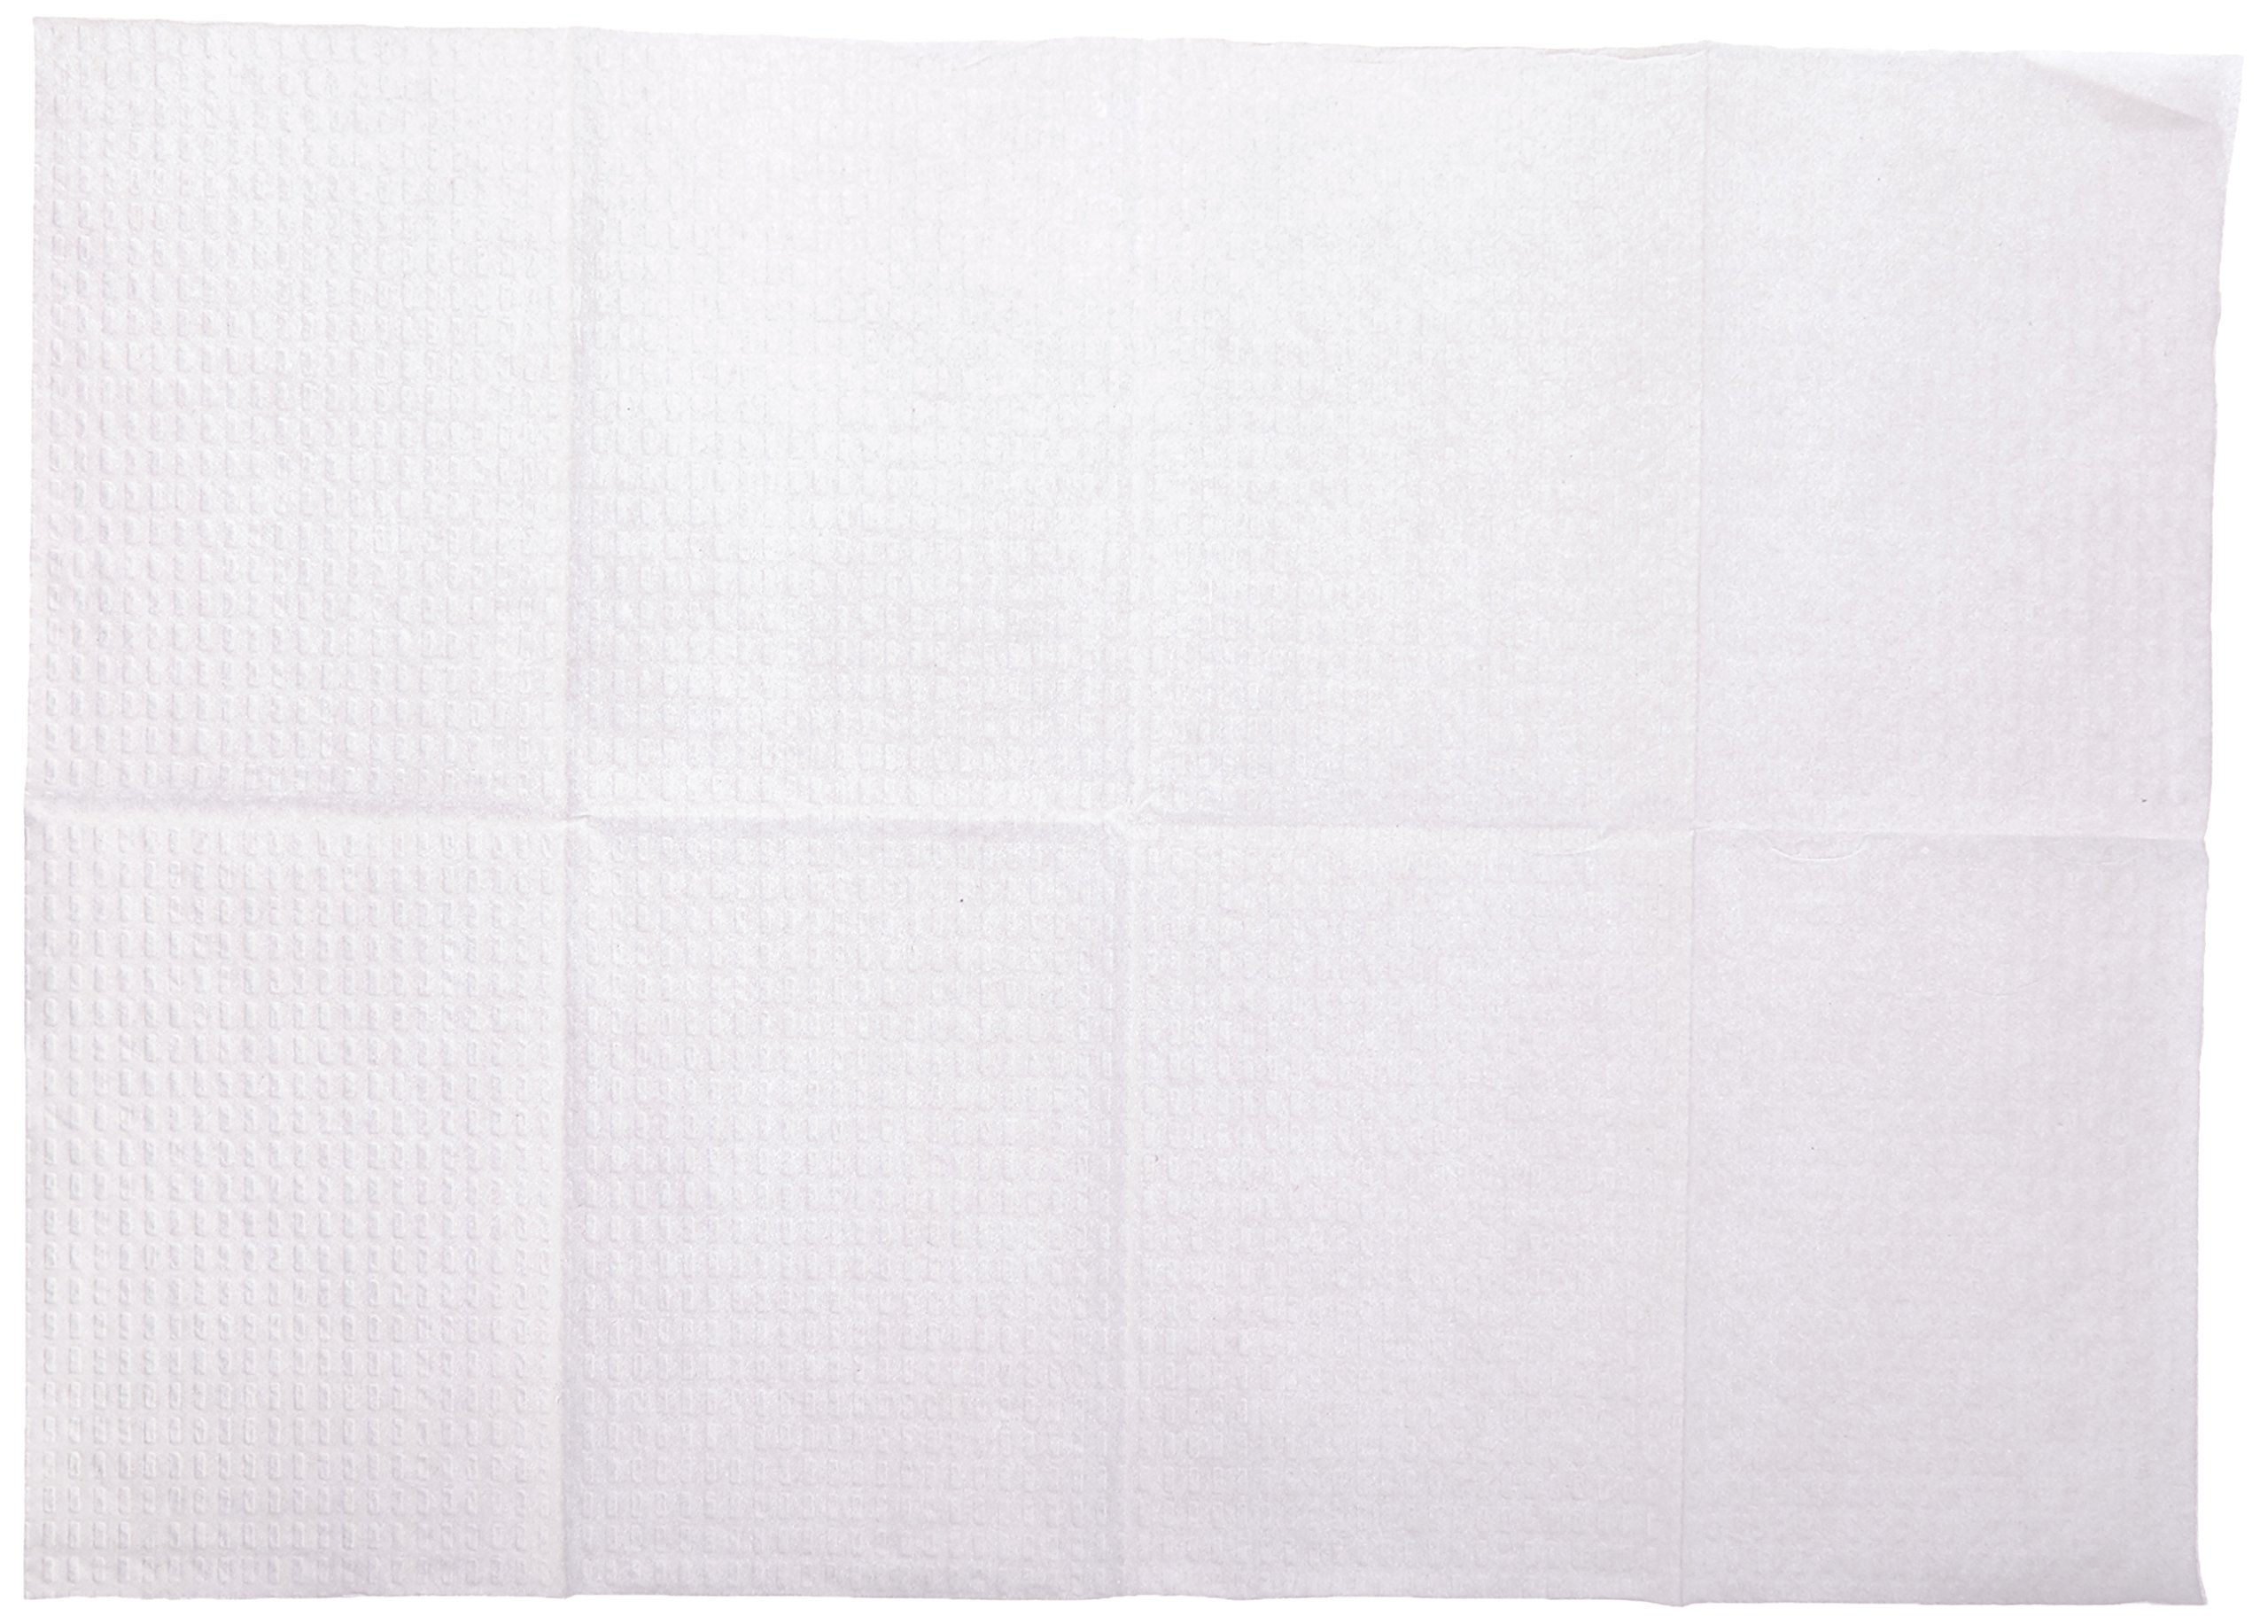 McKesson 18-885 Procedure Towel, 3-Ply/Poly, White, 13'' Width, 18'' Length (Pack of 500)